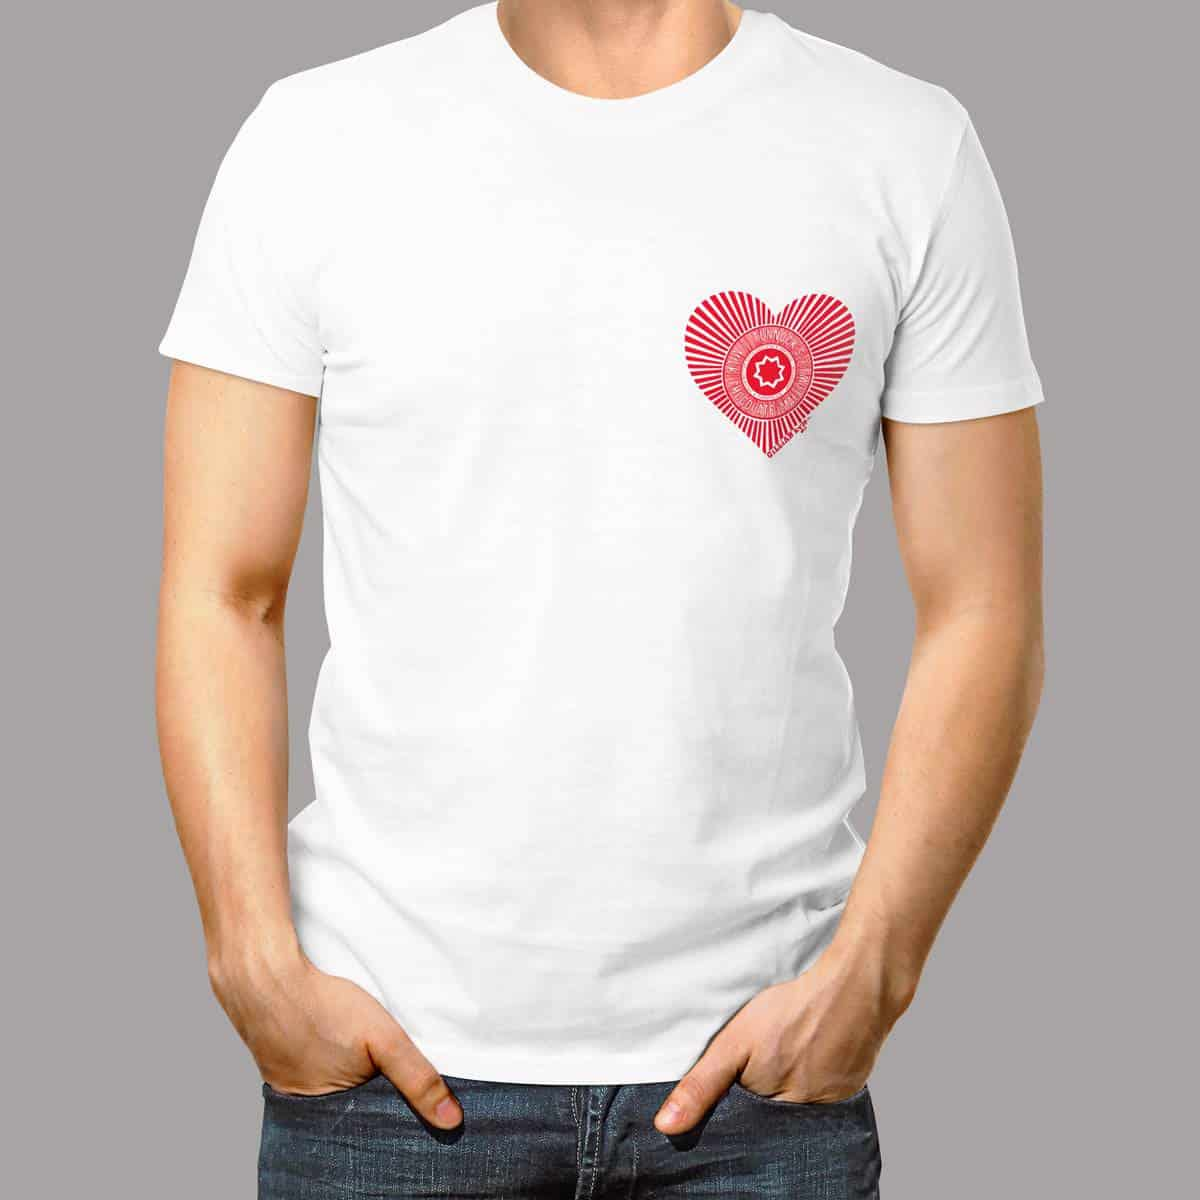 Gillian kyle scottish mens t shirt valentines gift love for Wordpress t shirt store theme free